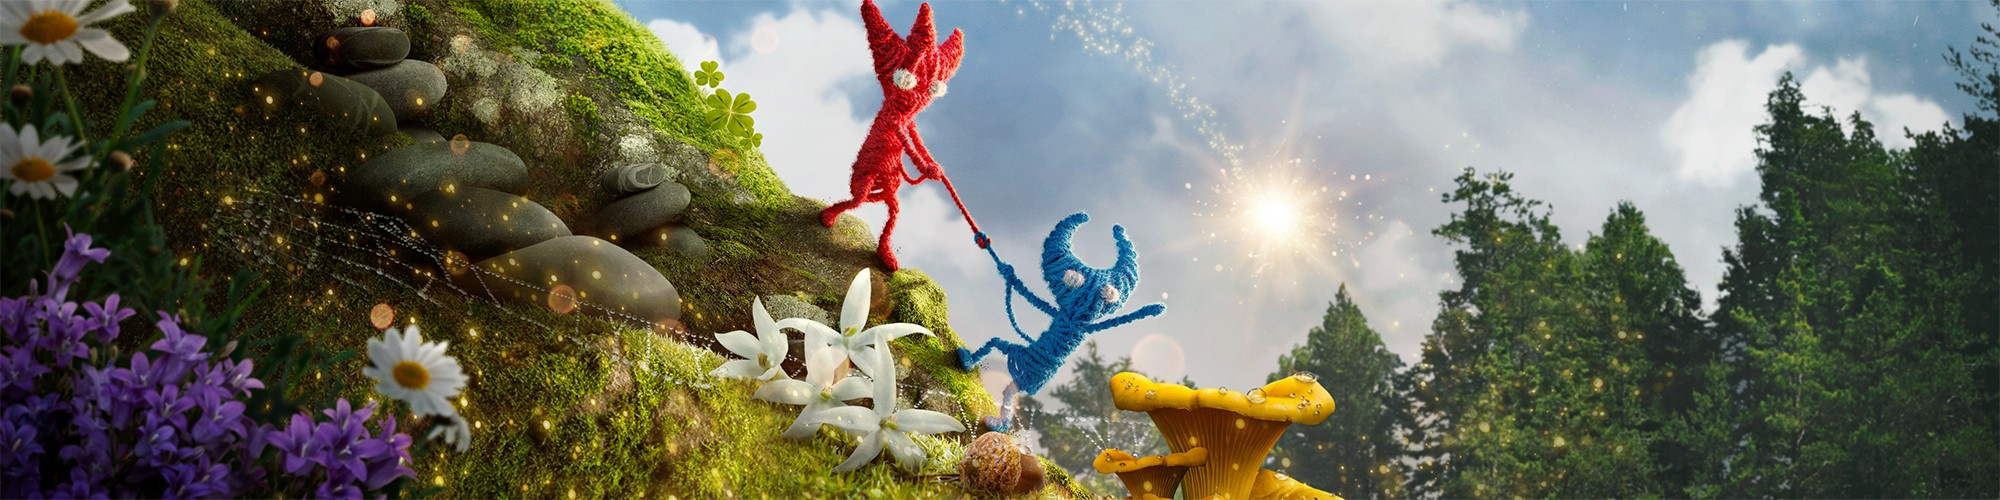 Unravel Two technical specifications for PCs